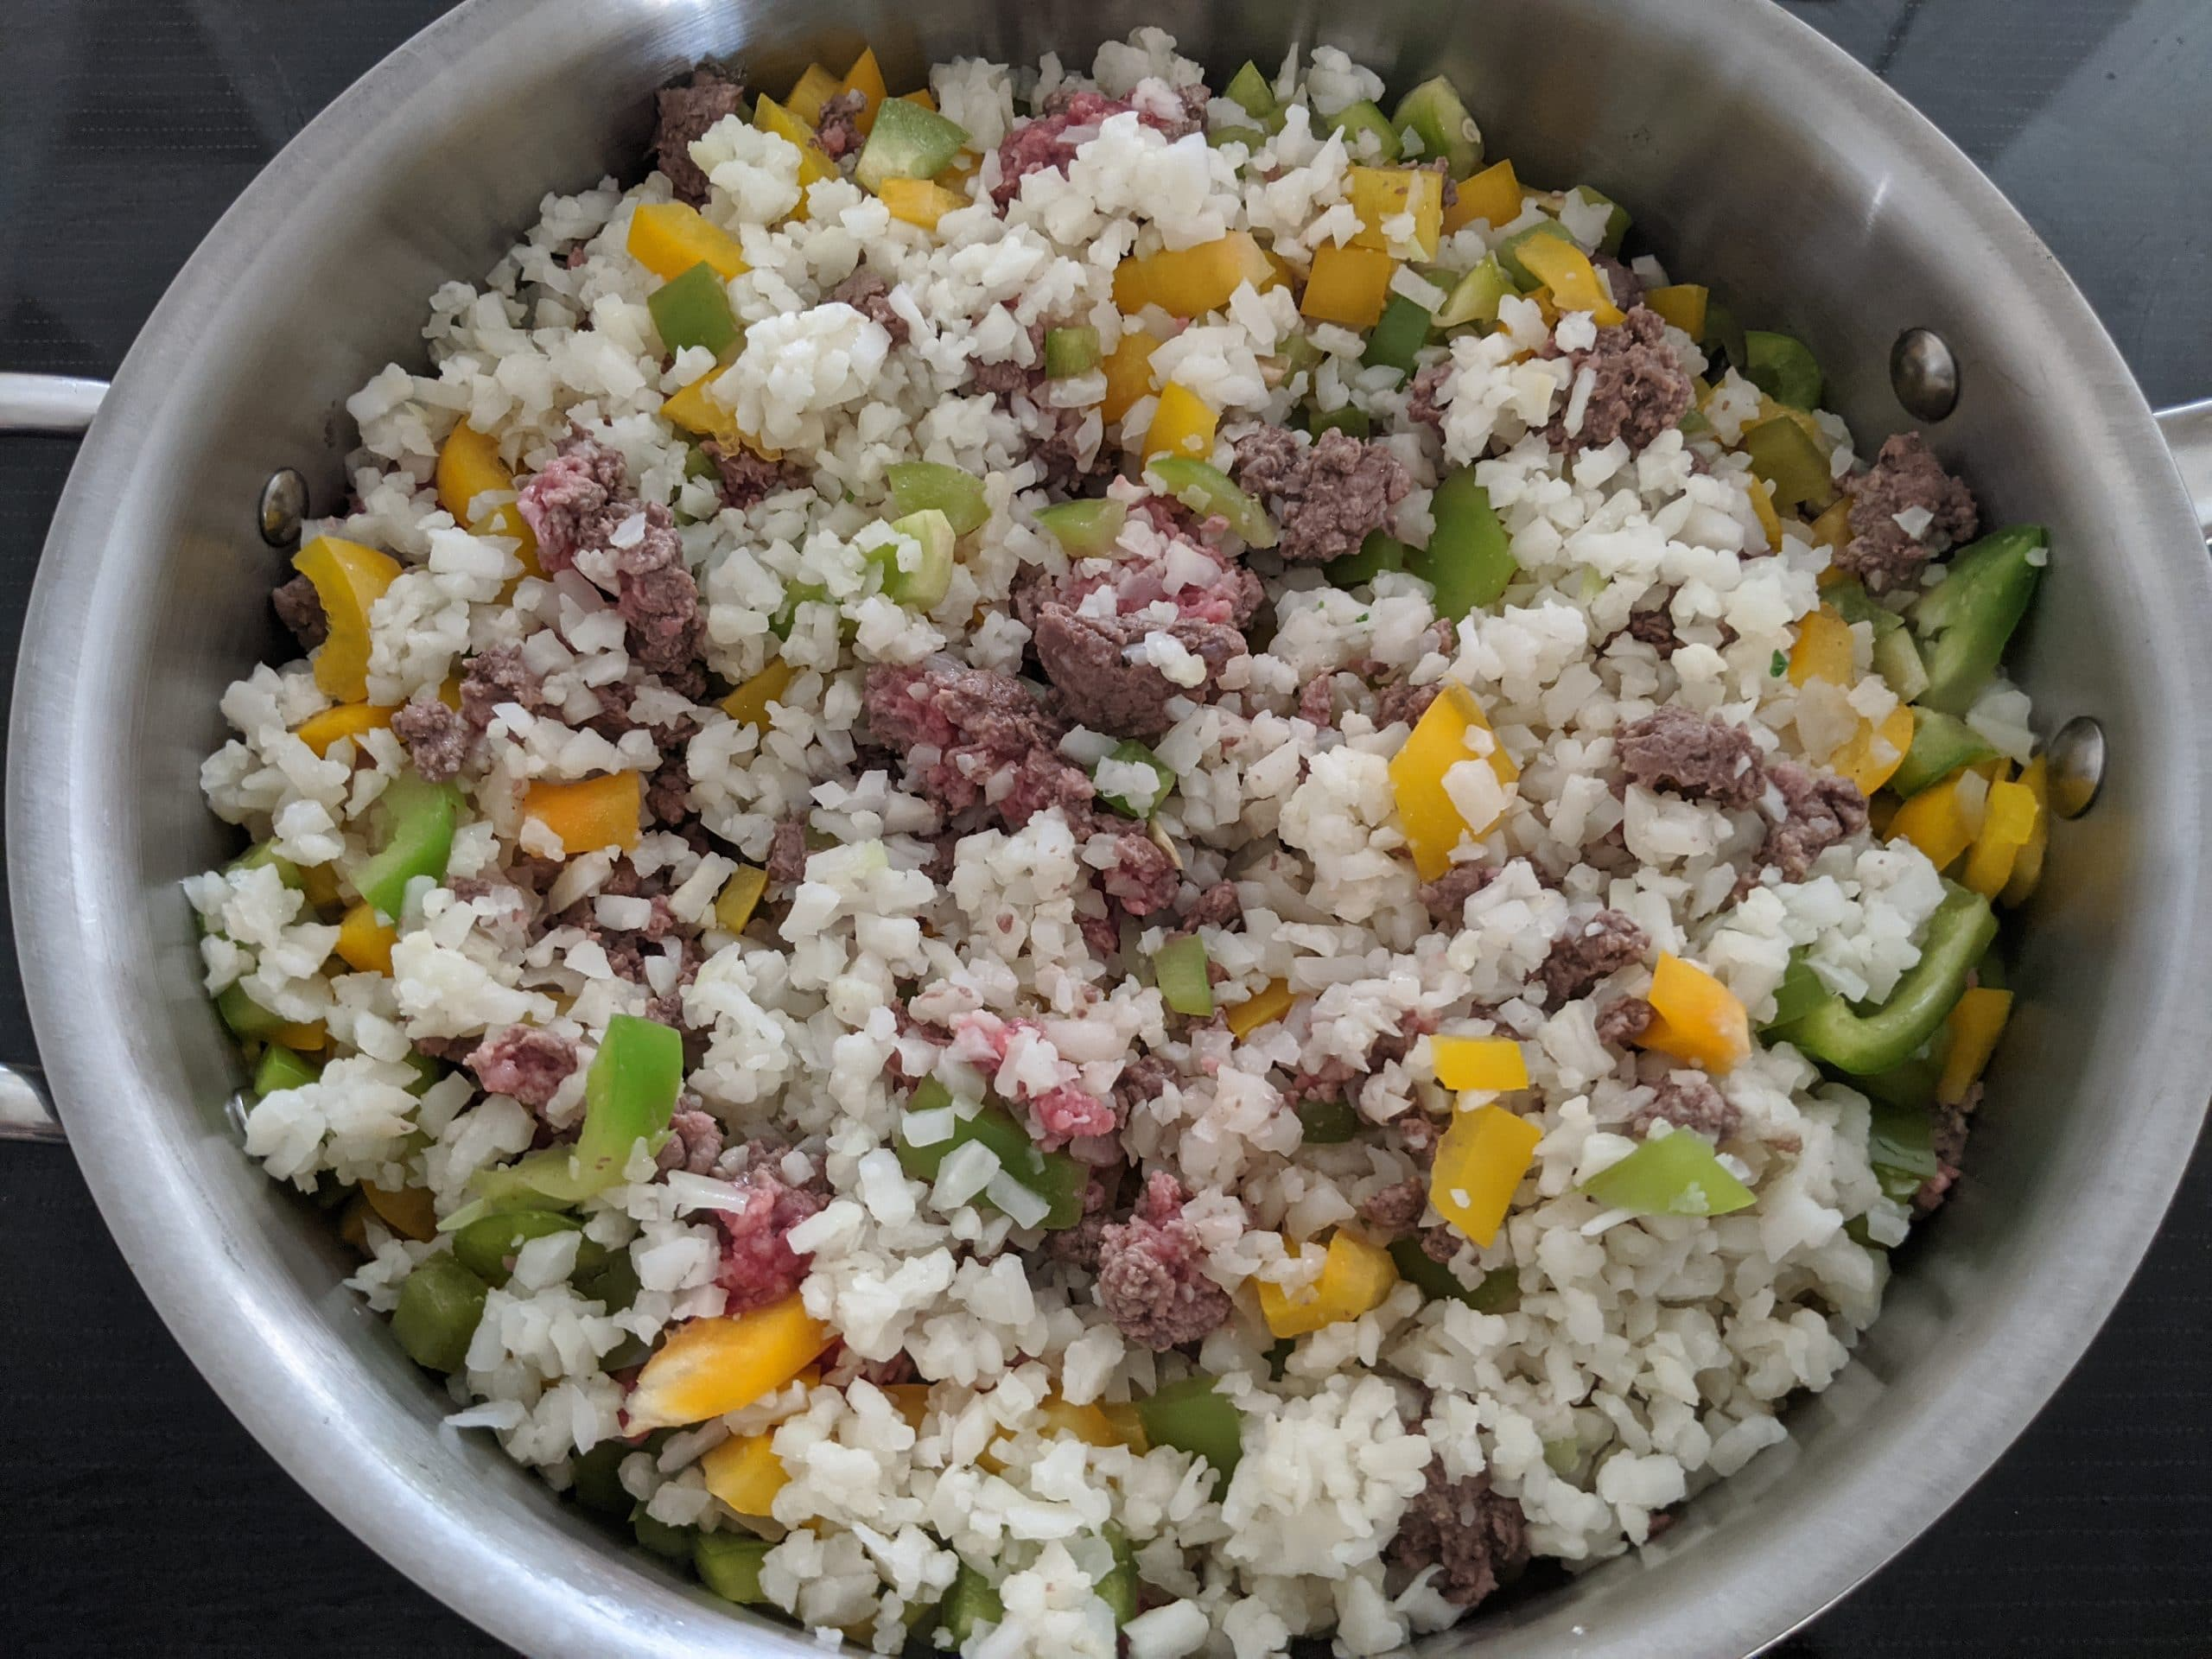 ground beef, peppers and rice cauliflower in the skillet